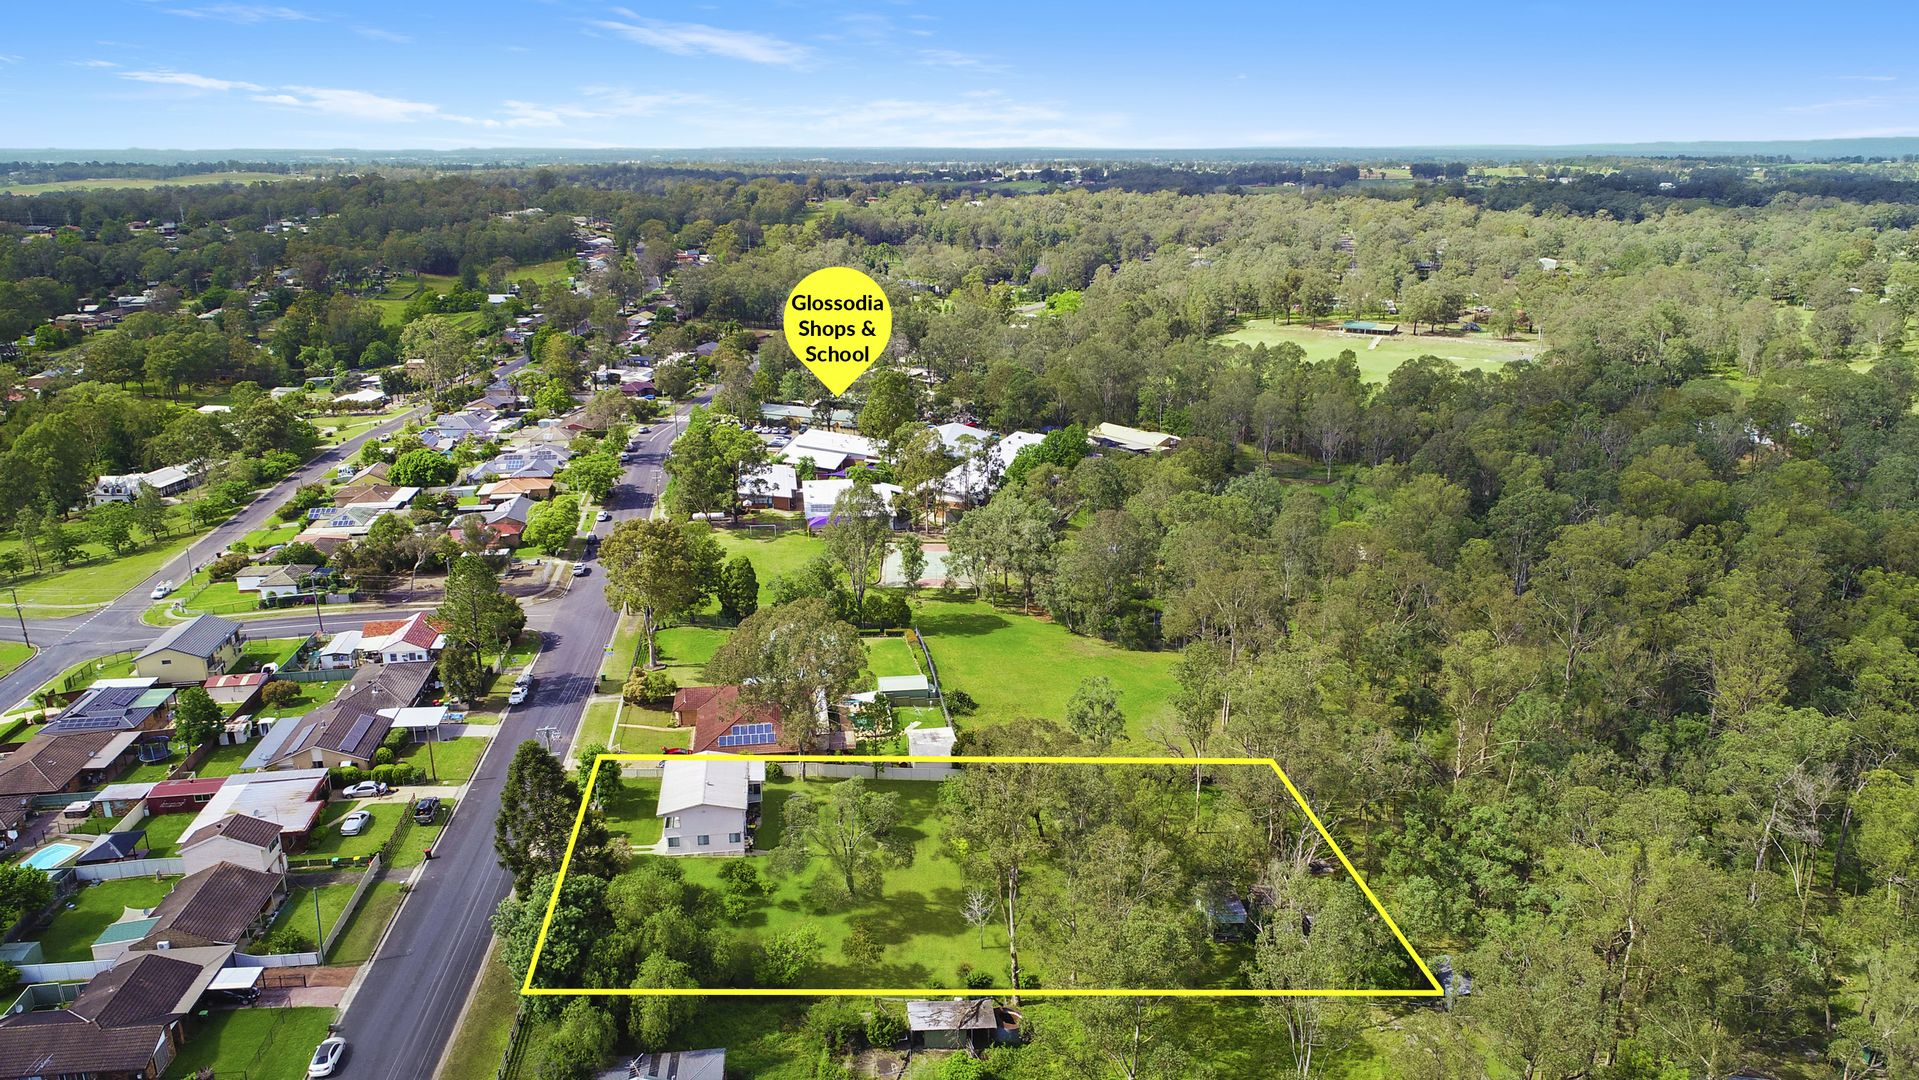 142 - 144 Golden Valley Drive, Glossodia NSW 2756, Image 0